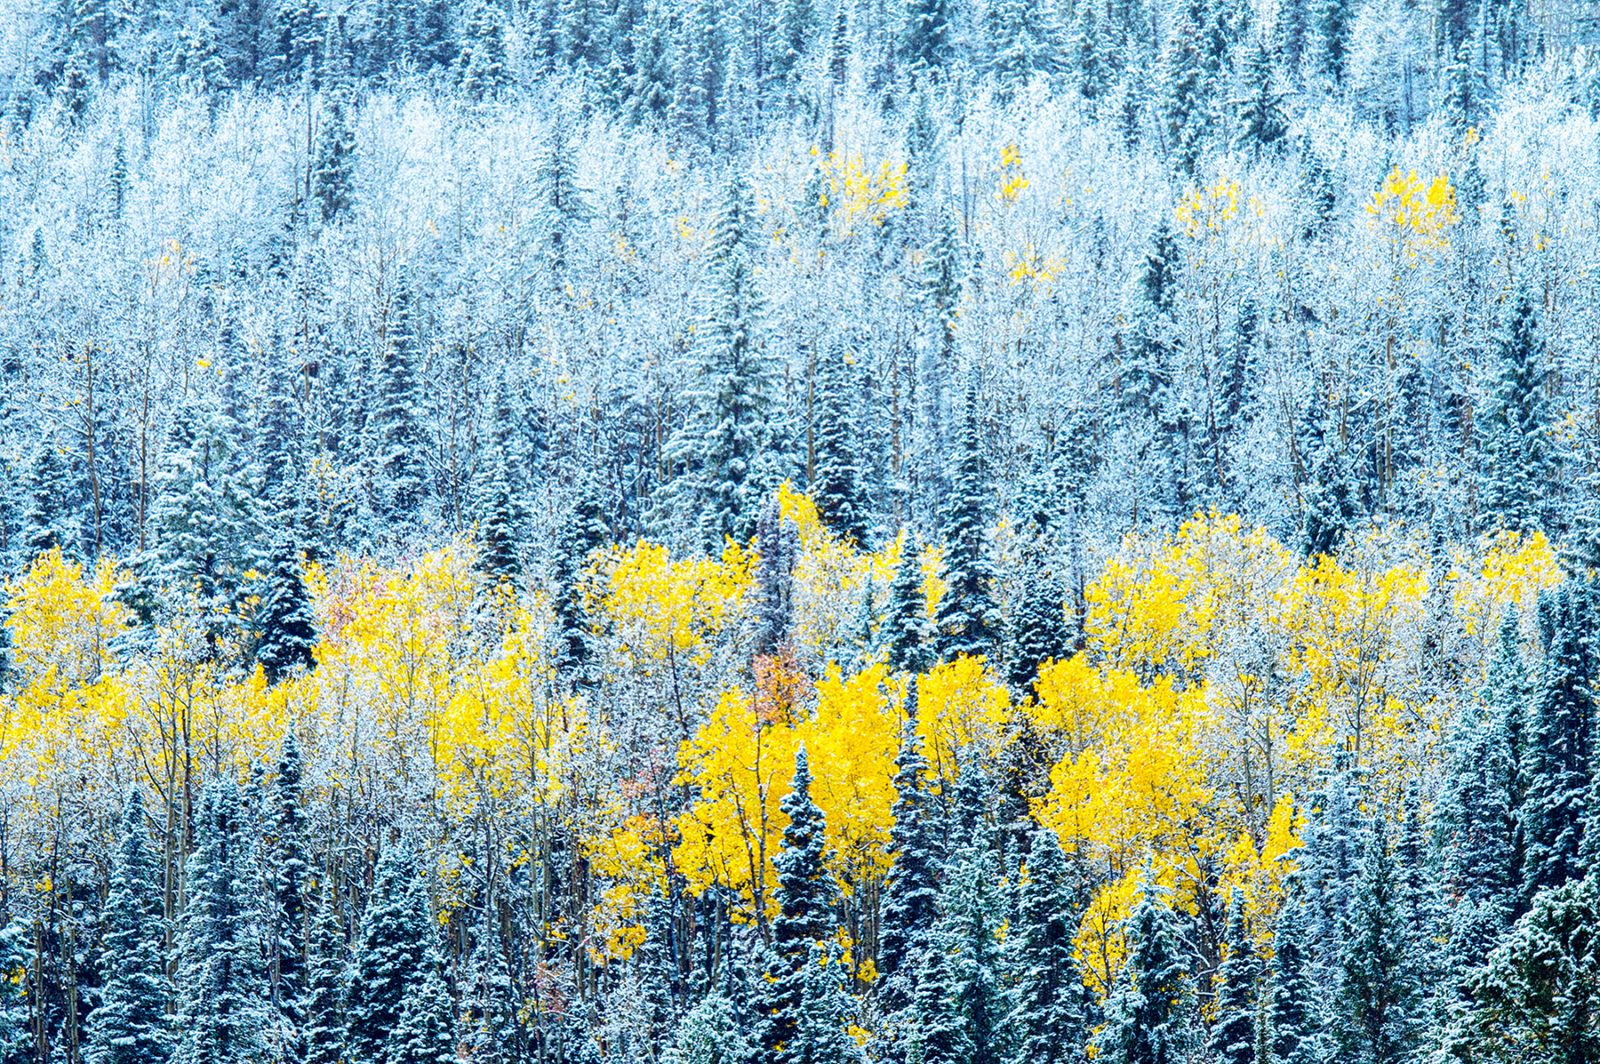 Appearance of the last remaining aspen colors